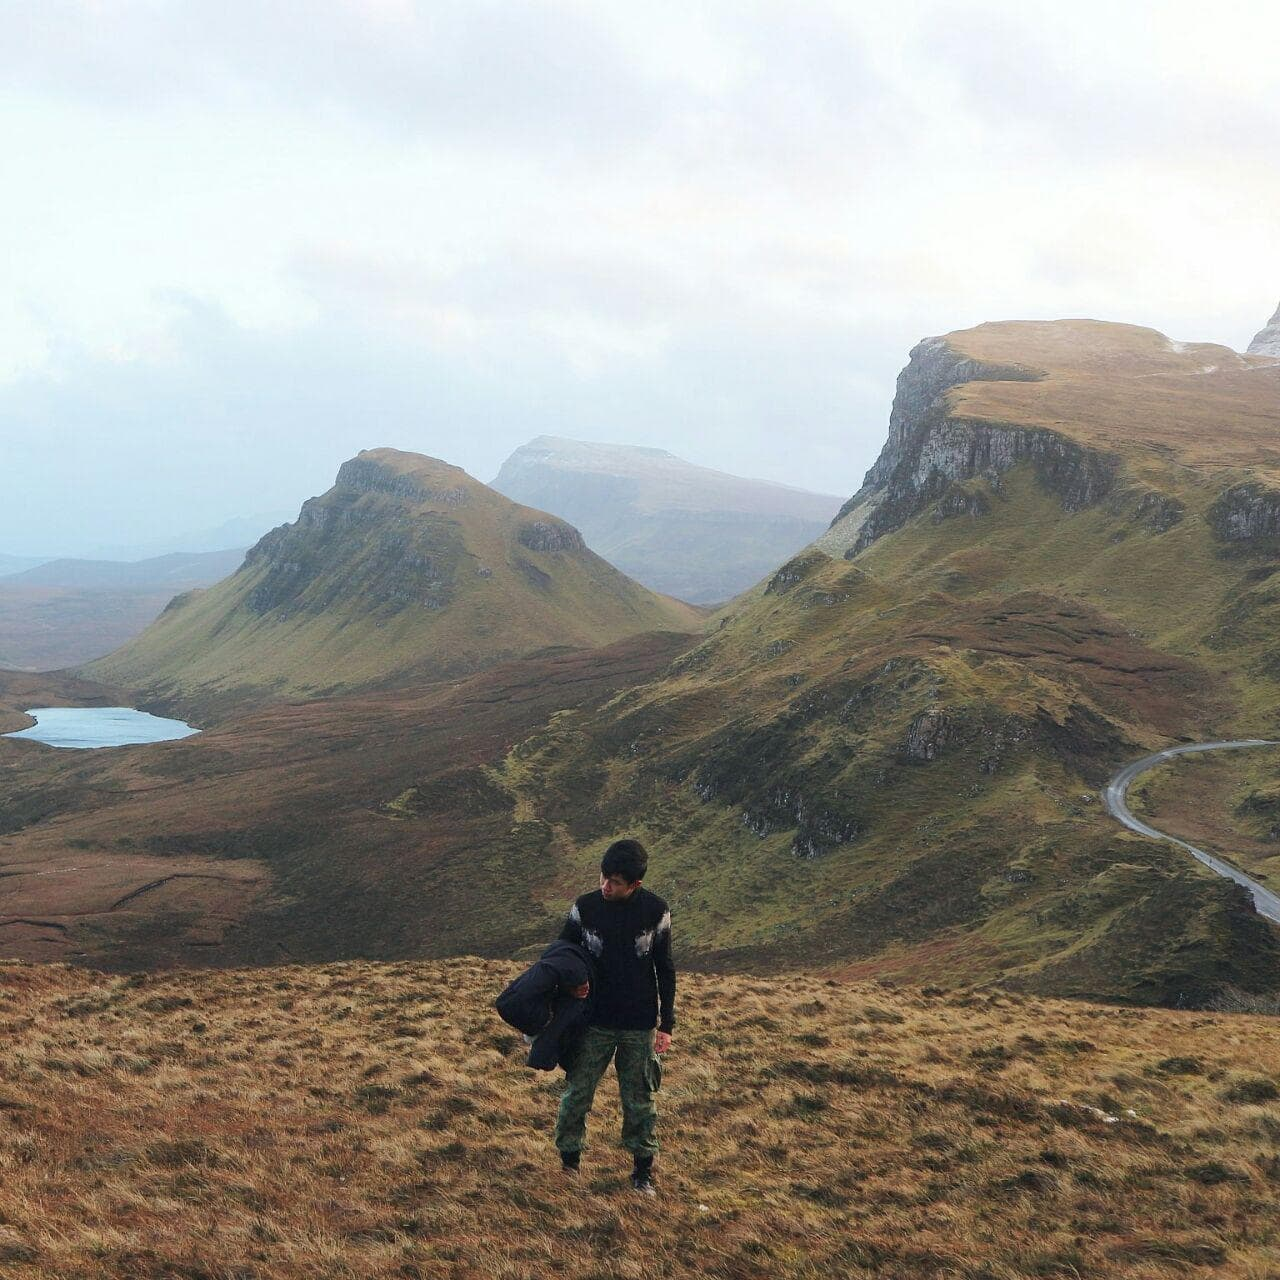 Skye: One of the Most Beautiful Places in the World